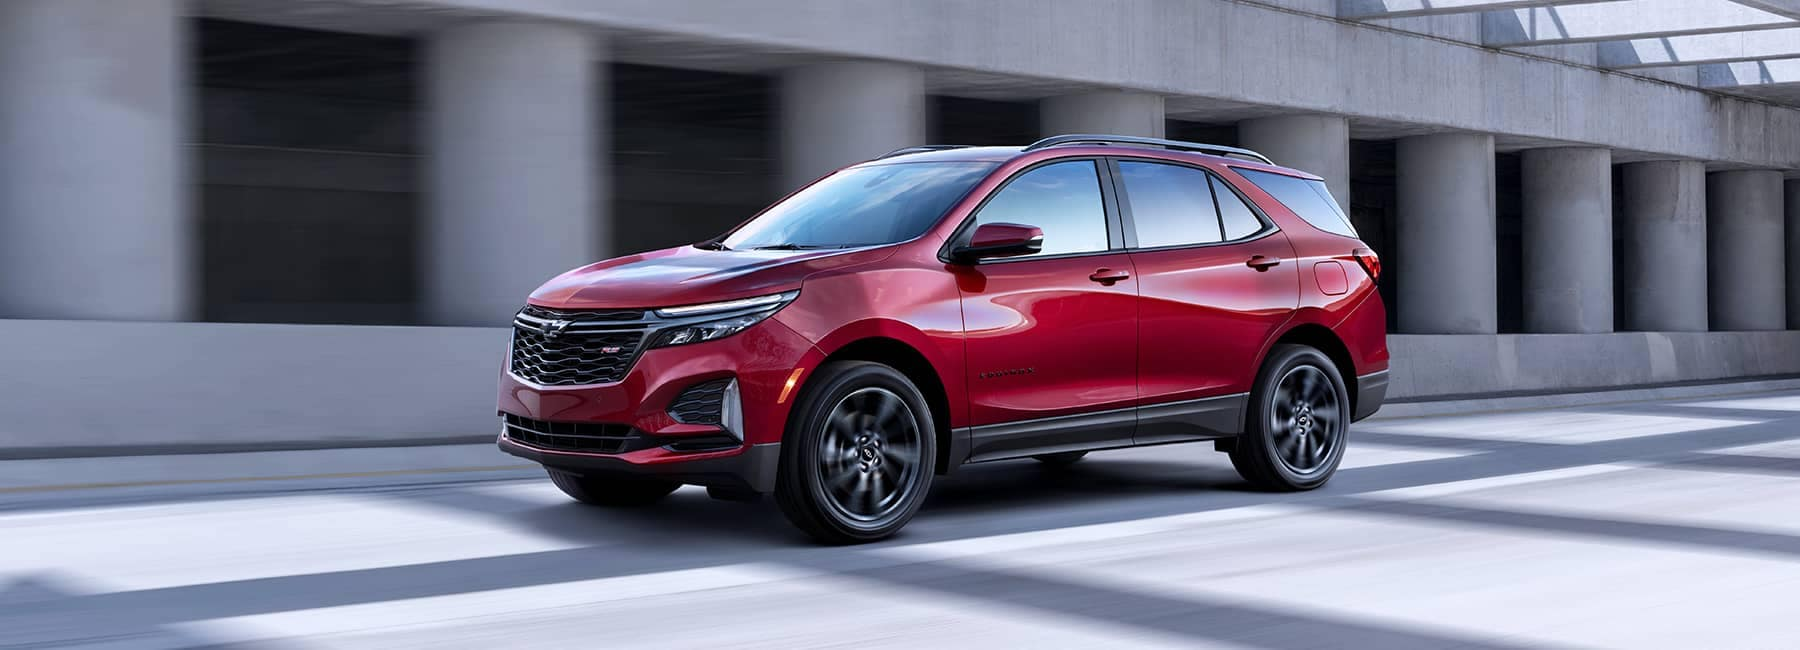 Red 2021 Chevrolet Equinox